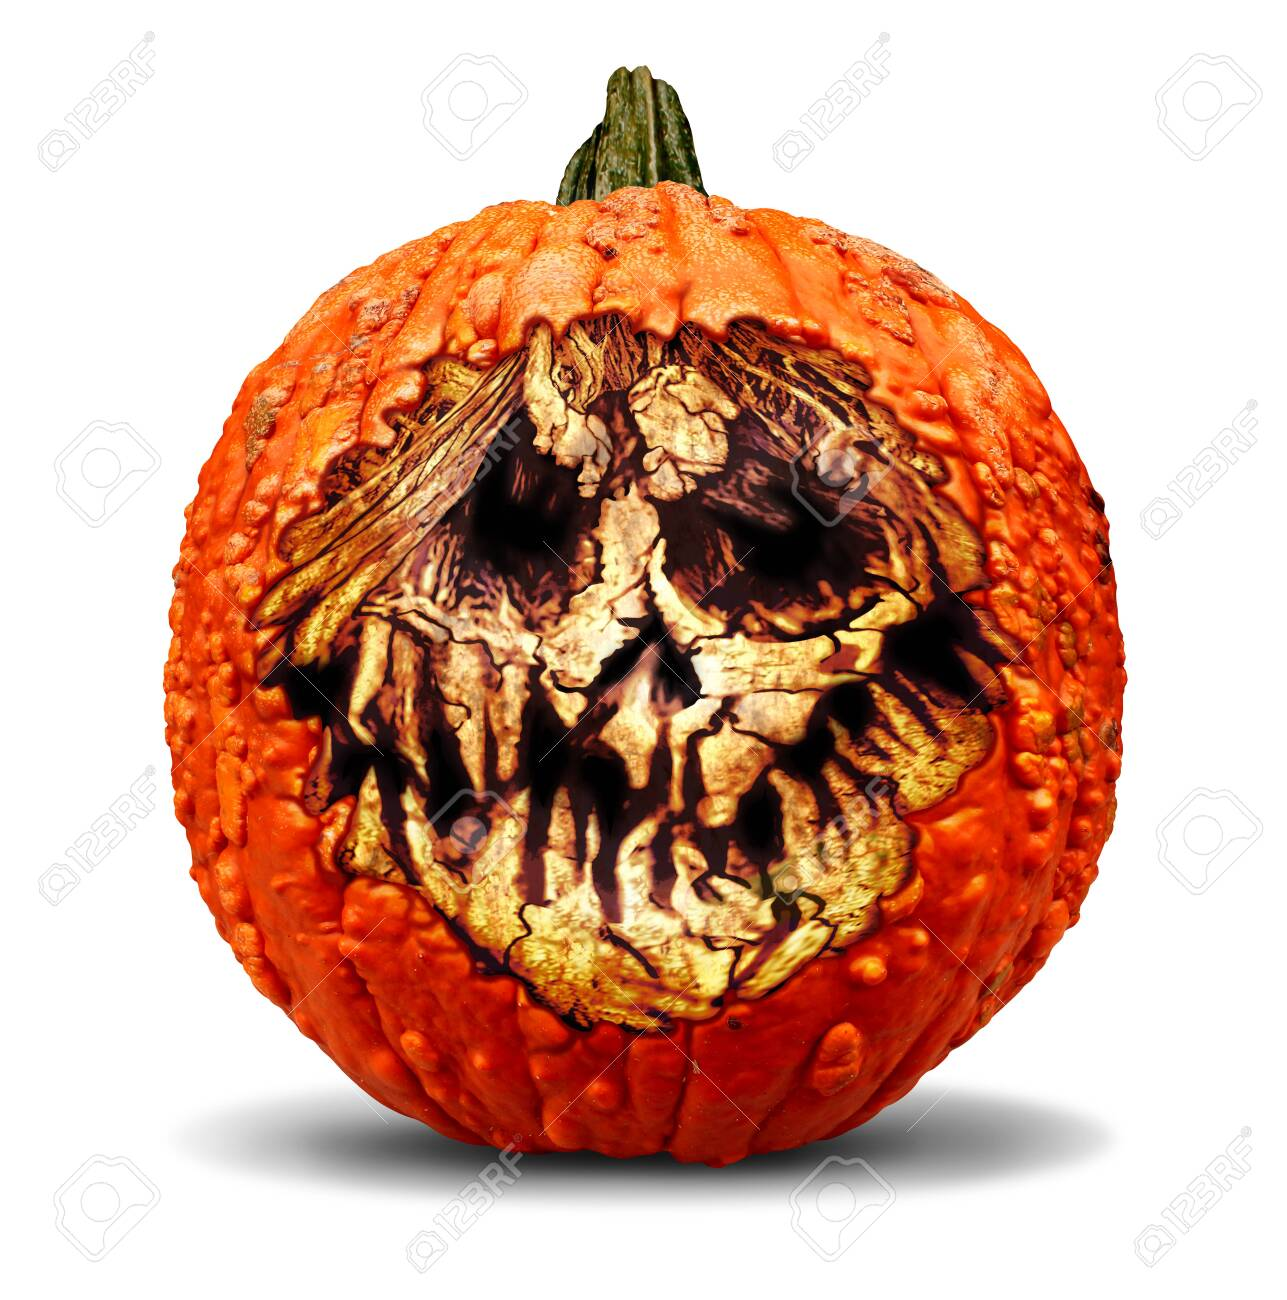 Creepy Halloween Jack O Lantern Pumpkin With A Carved Evil Scary Stock Photo Picture And Royalty Free Image Image 127787359